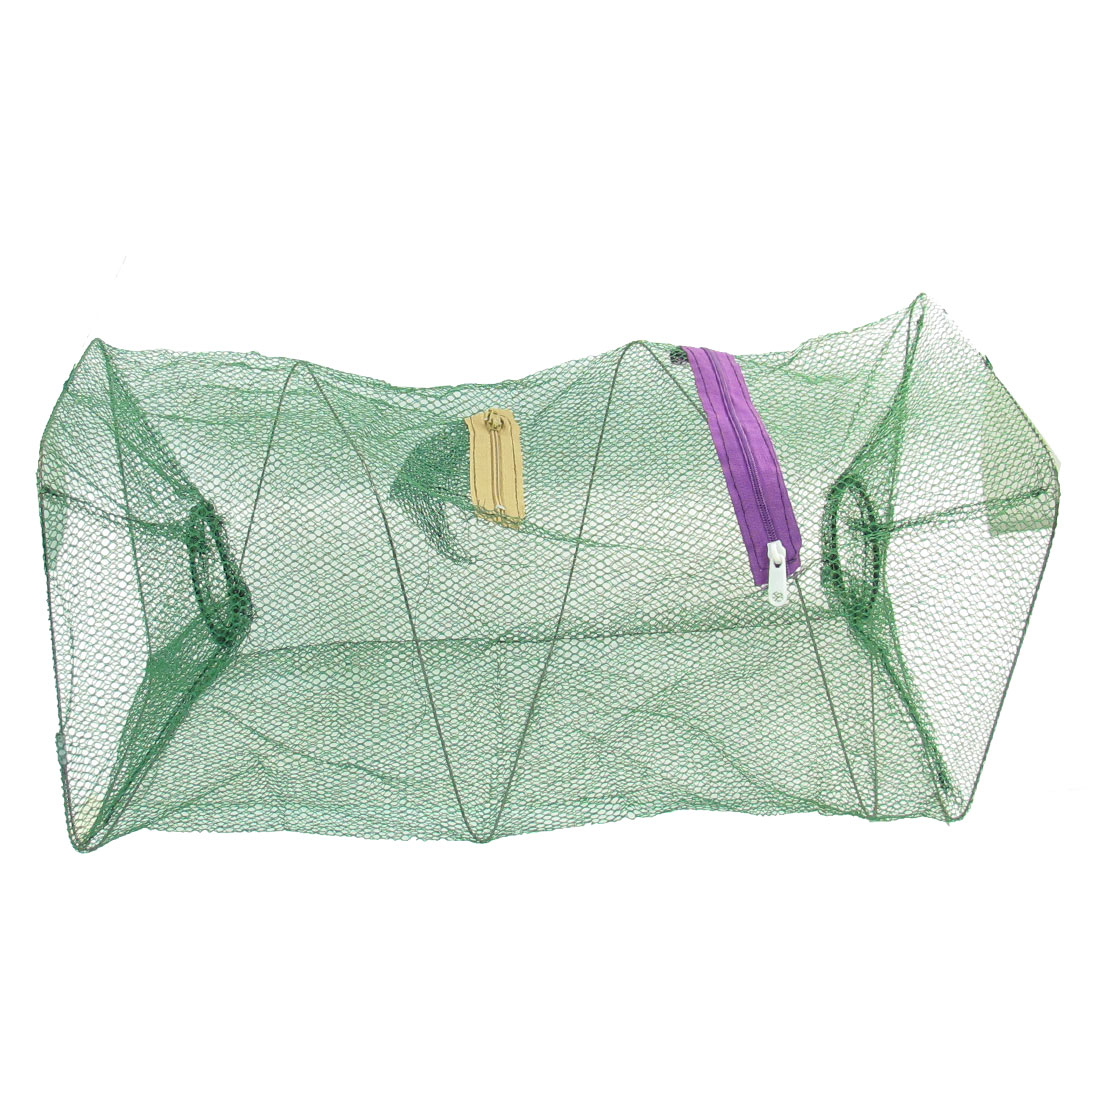 "Foldable Green Nylon 18.9"" High Lobster Crawfish Keepnet"